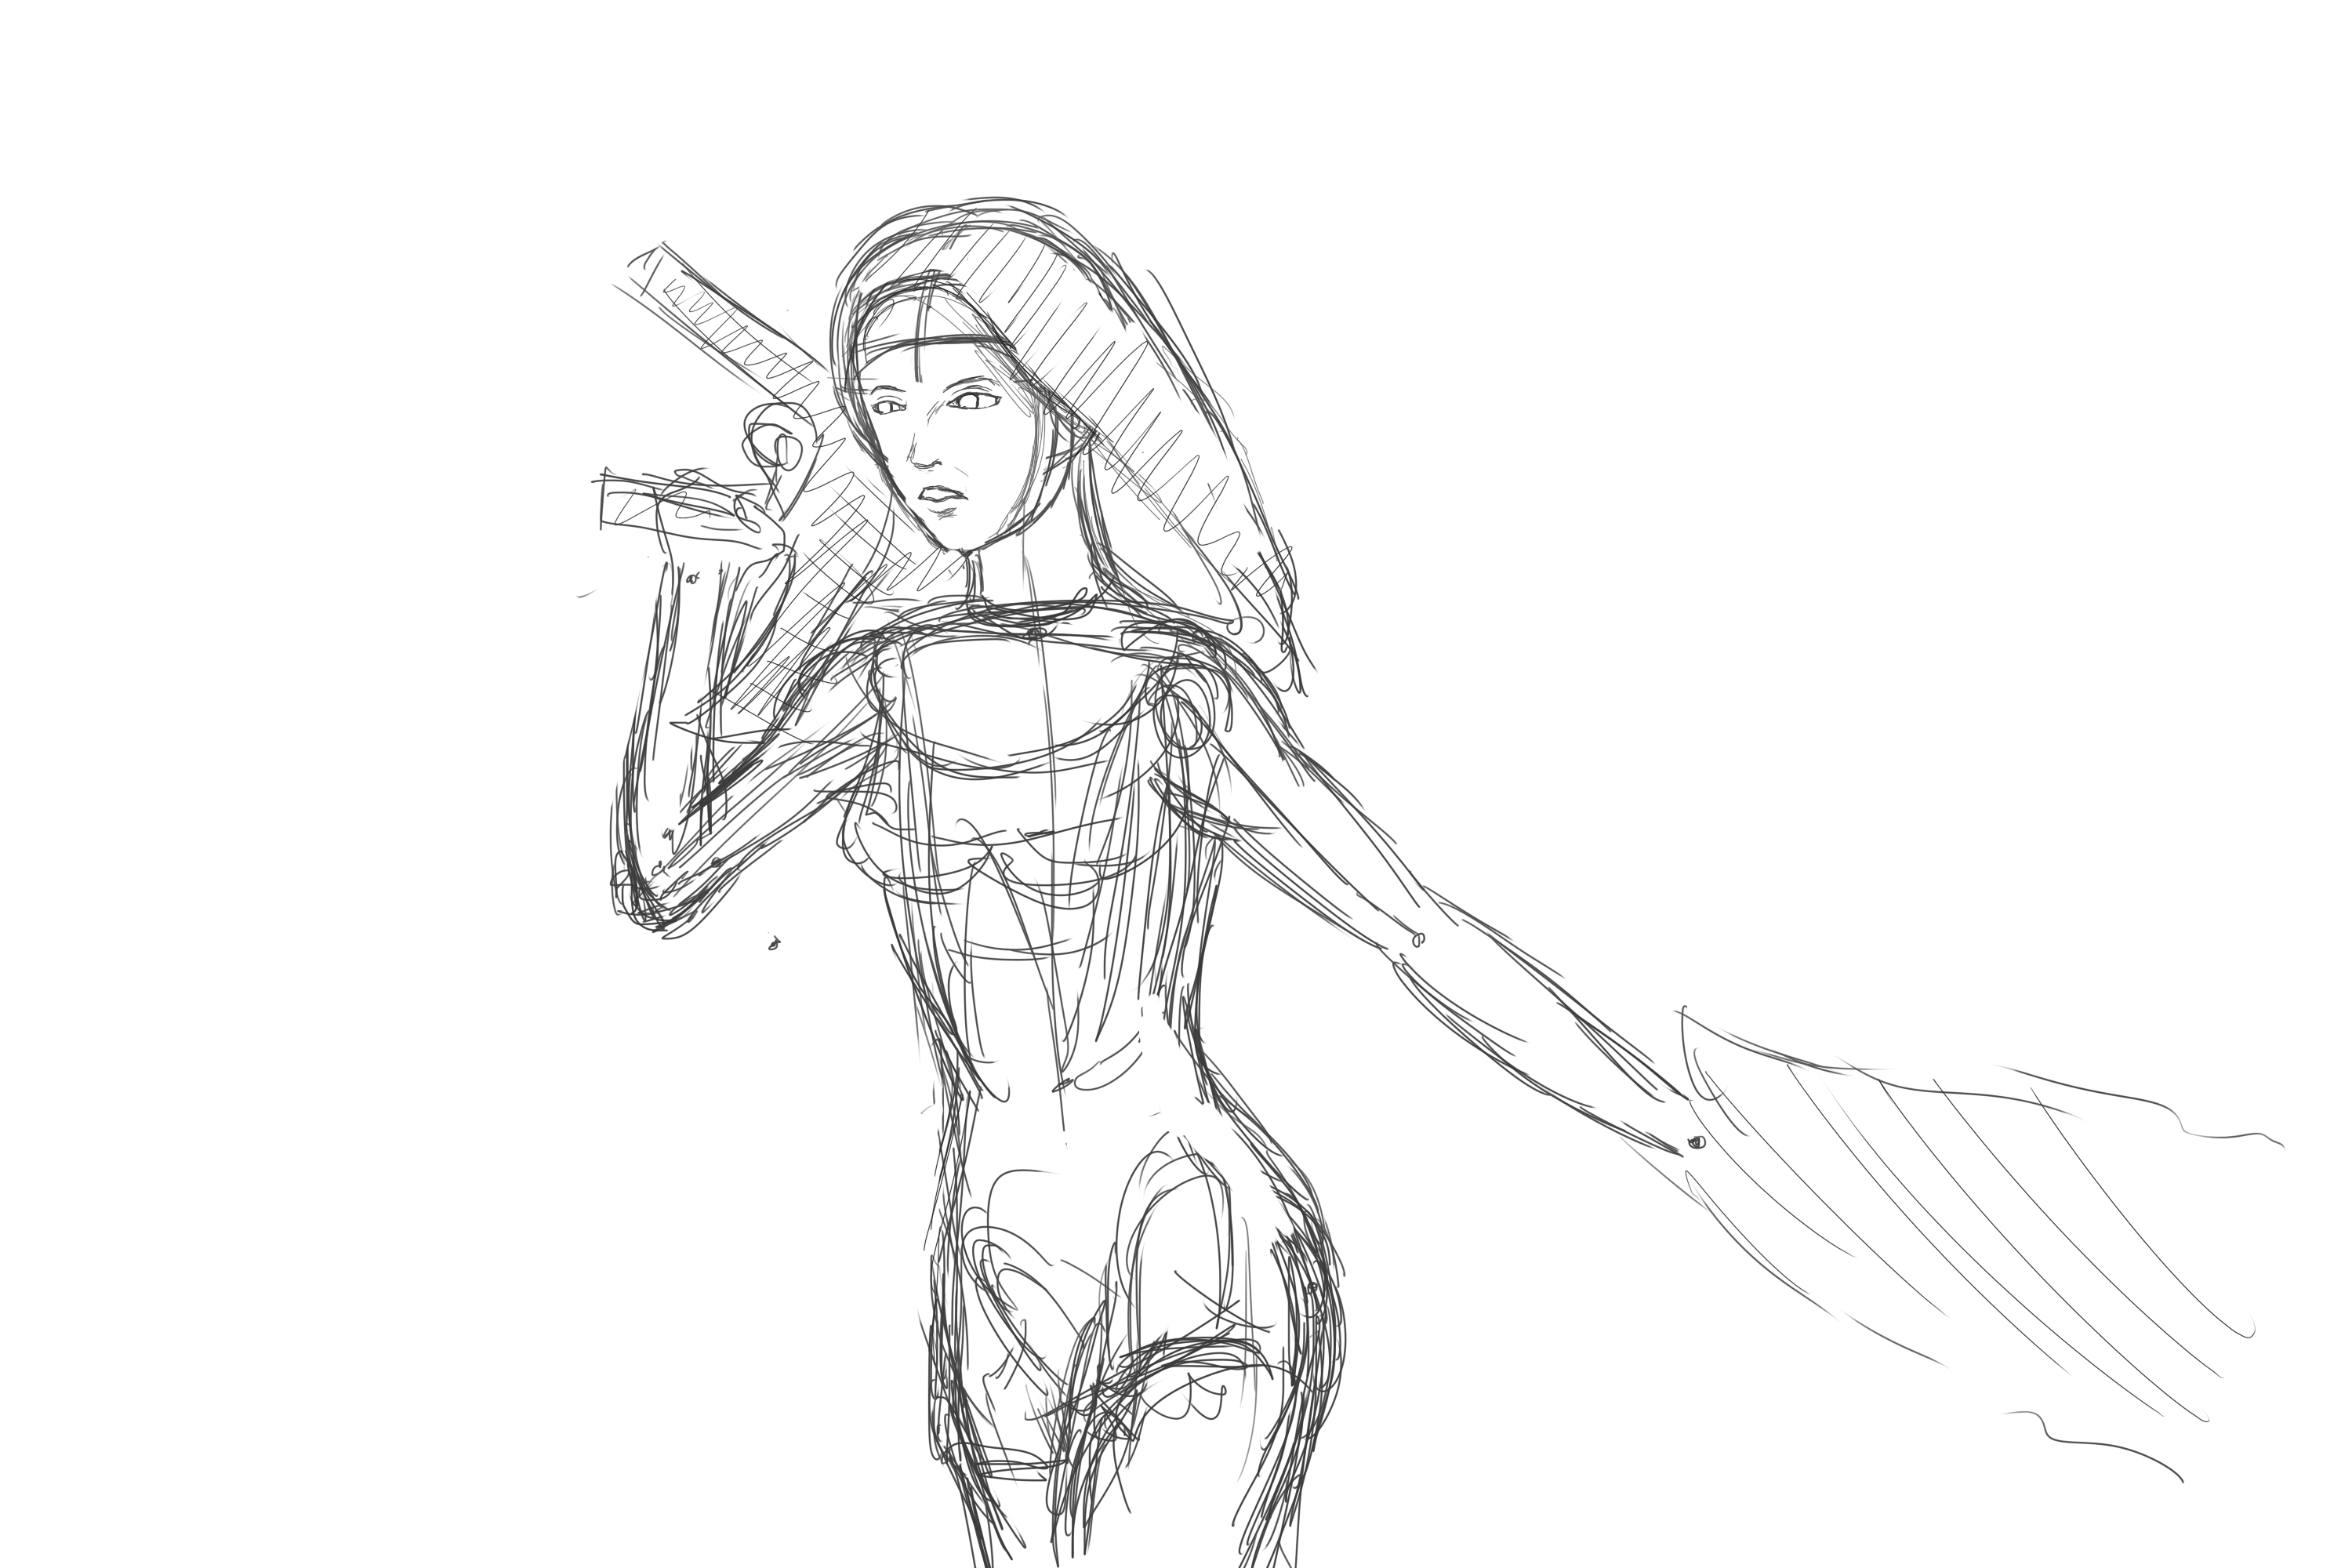 3000x2000 NUN WITH A GUN SKETCH (WIP) by A Girl In A Sweater on DeviantArt